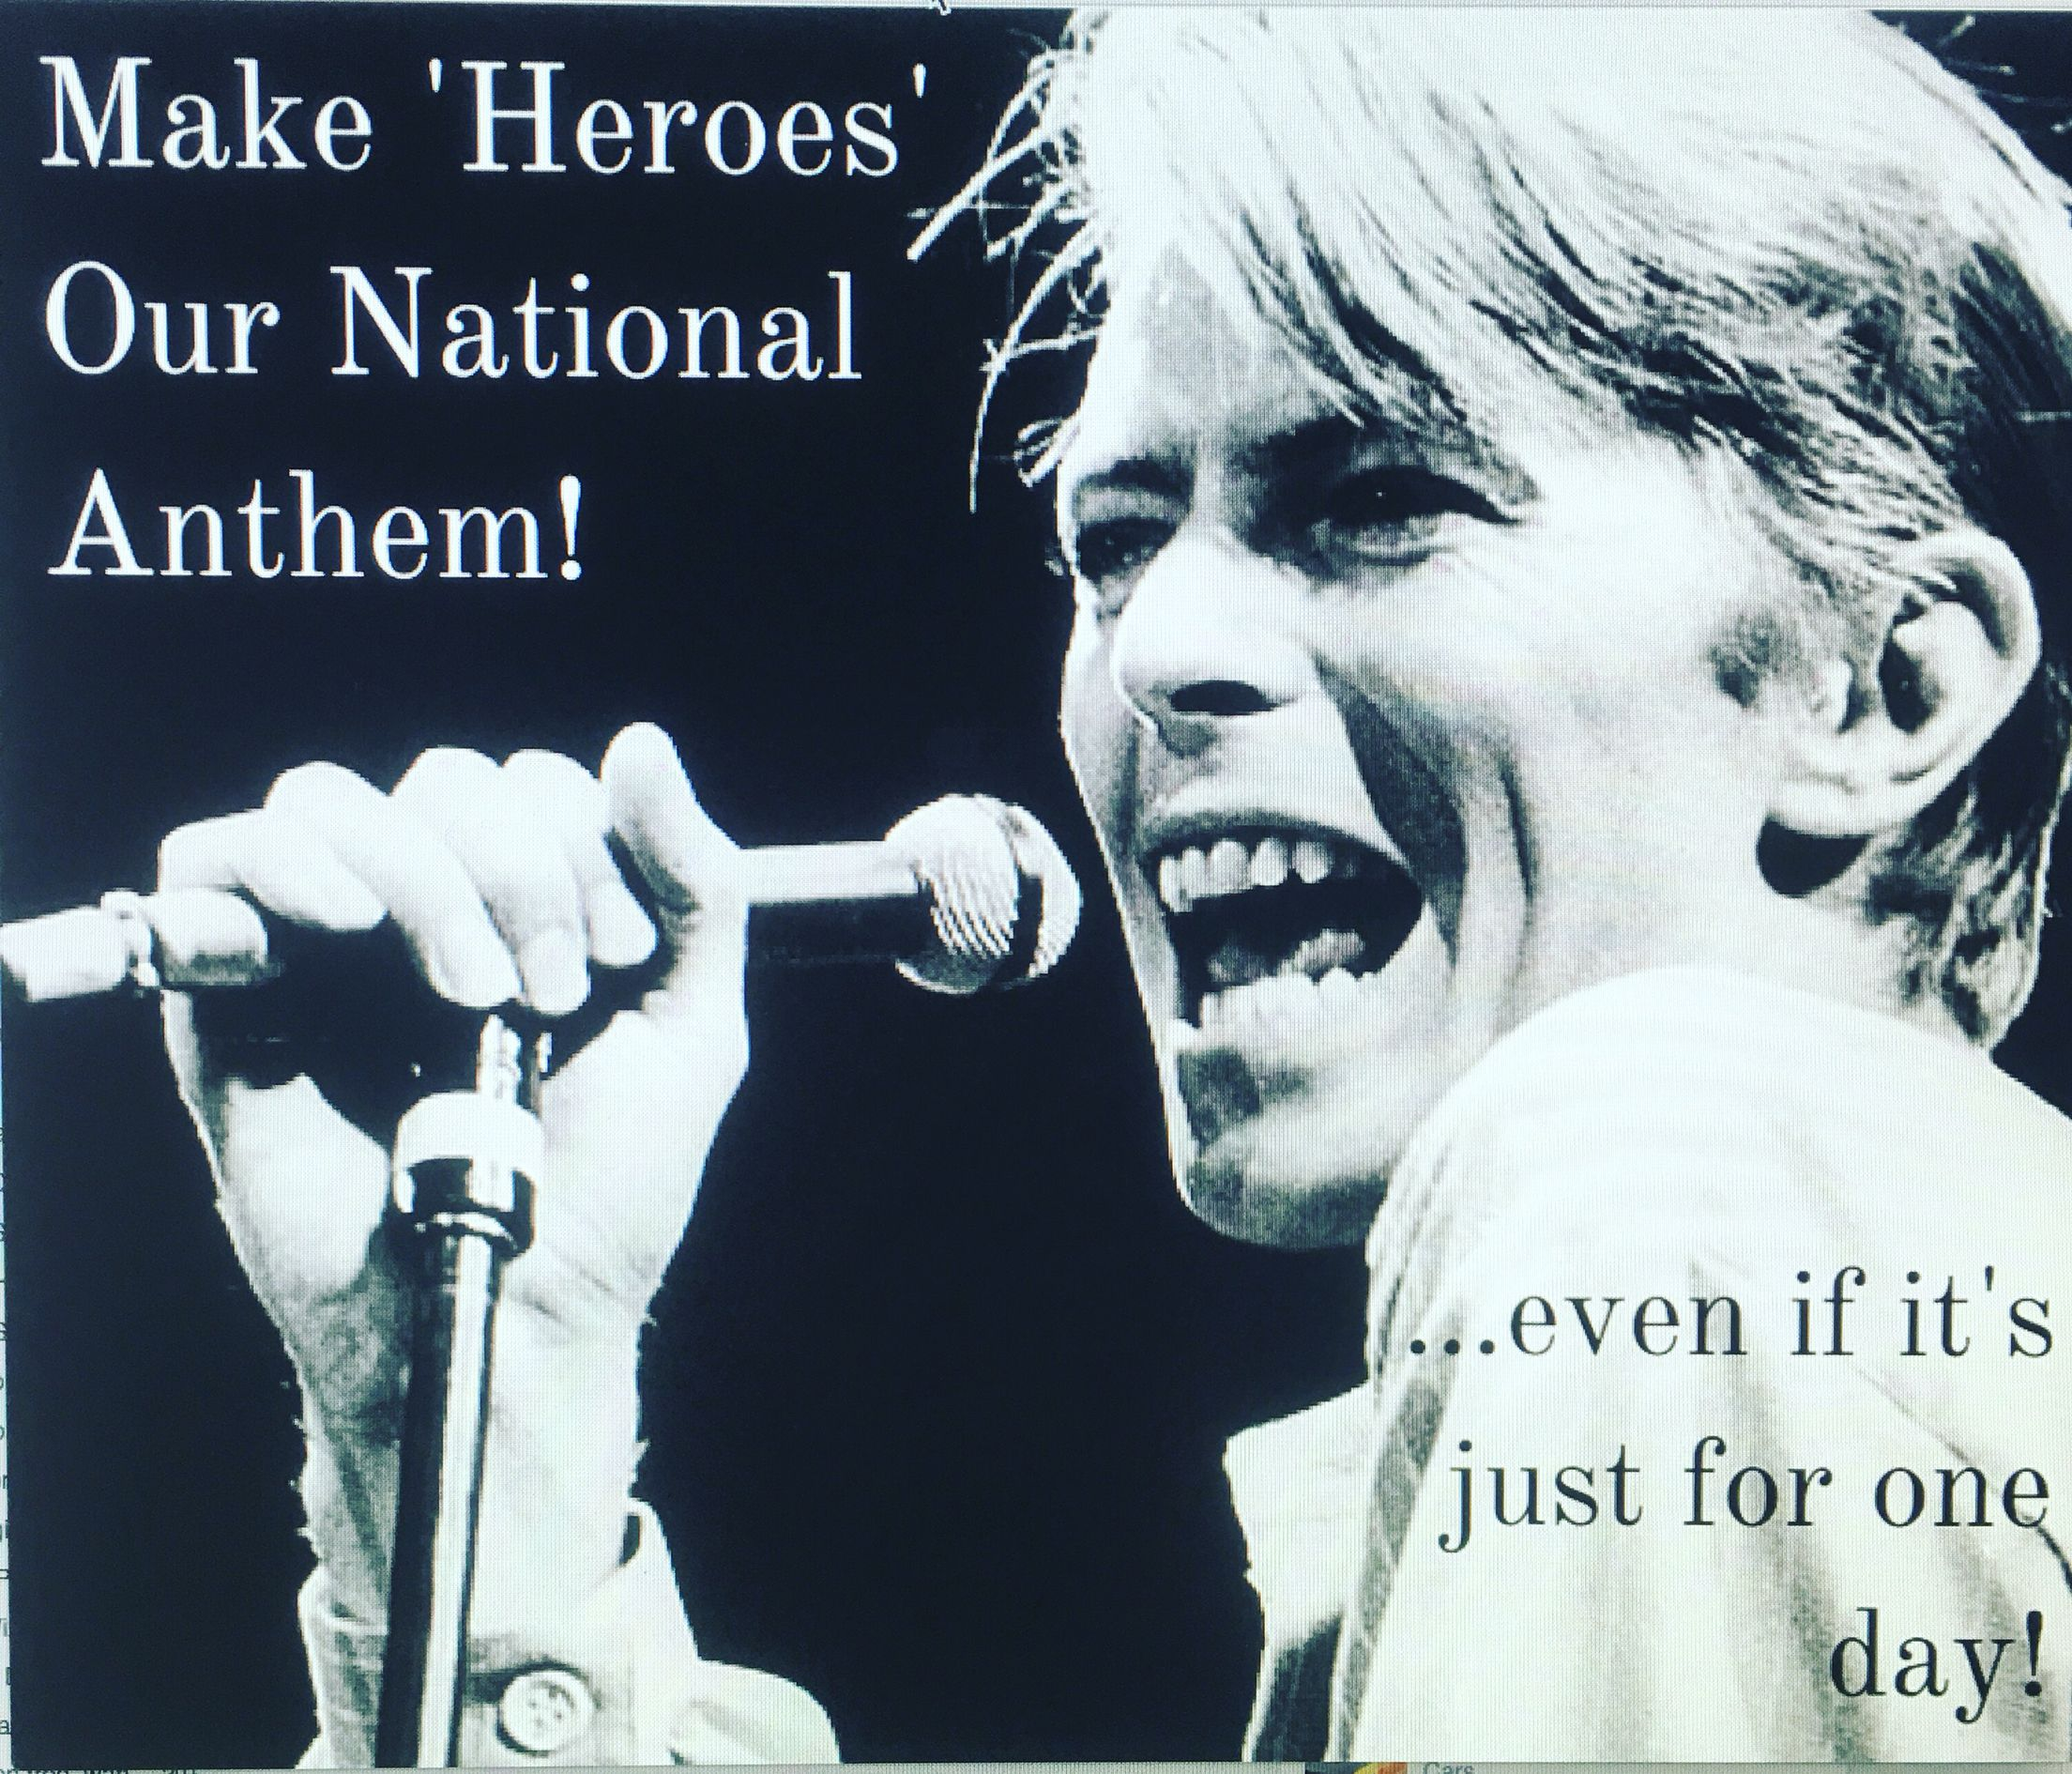 https://t.co/6gxzBZbhX0 Sign this petition to make 'Heroes' our national anthem ... Even just for one day.